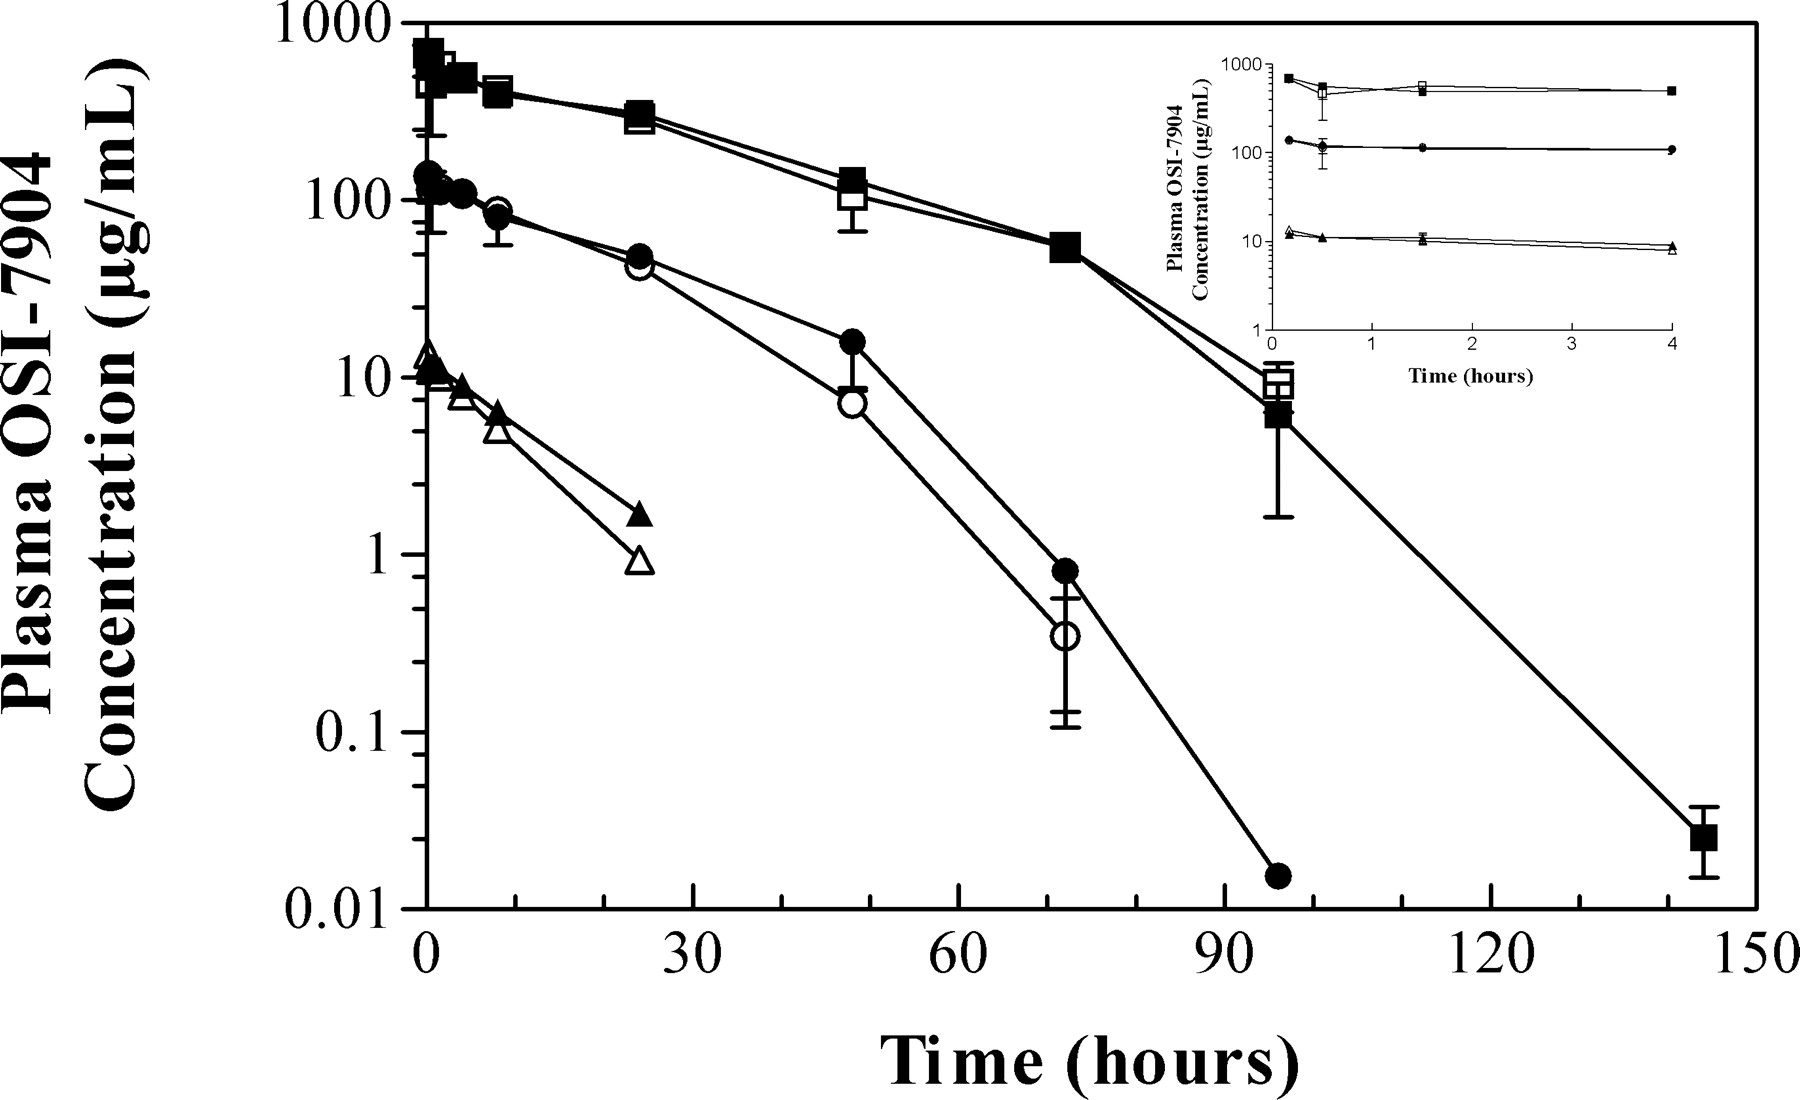 Pharmacokinetics Safety And Efficacy Of A Liposome Encapsulated 1911assemblydiagram Bypassing The Series 80 Components On Download Figure